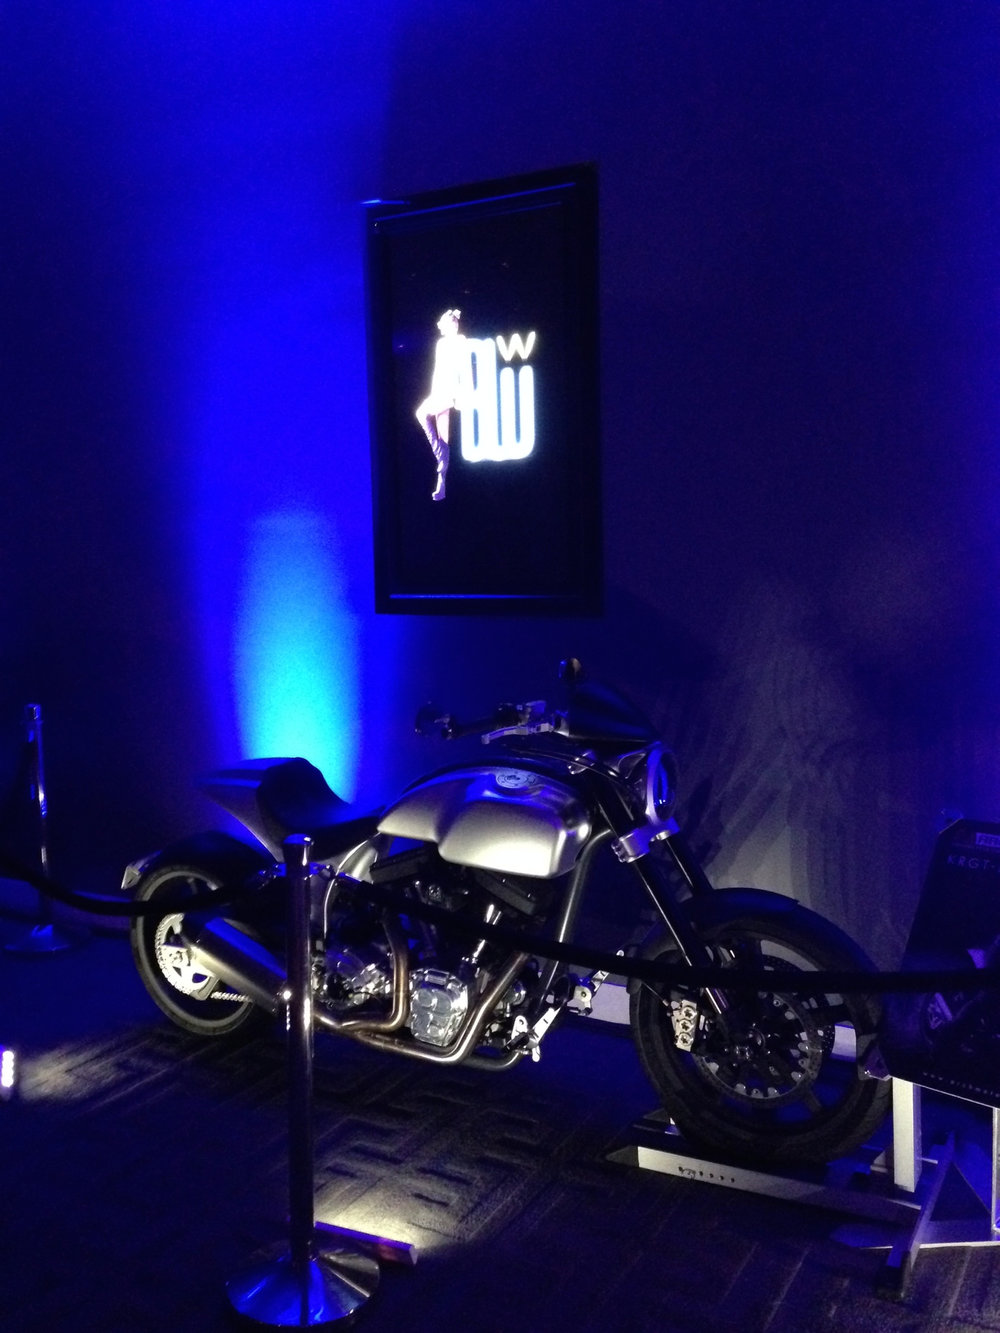 KRGT-1 display at the Red Bull after party.